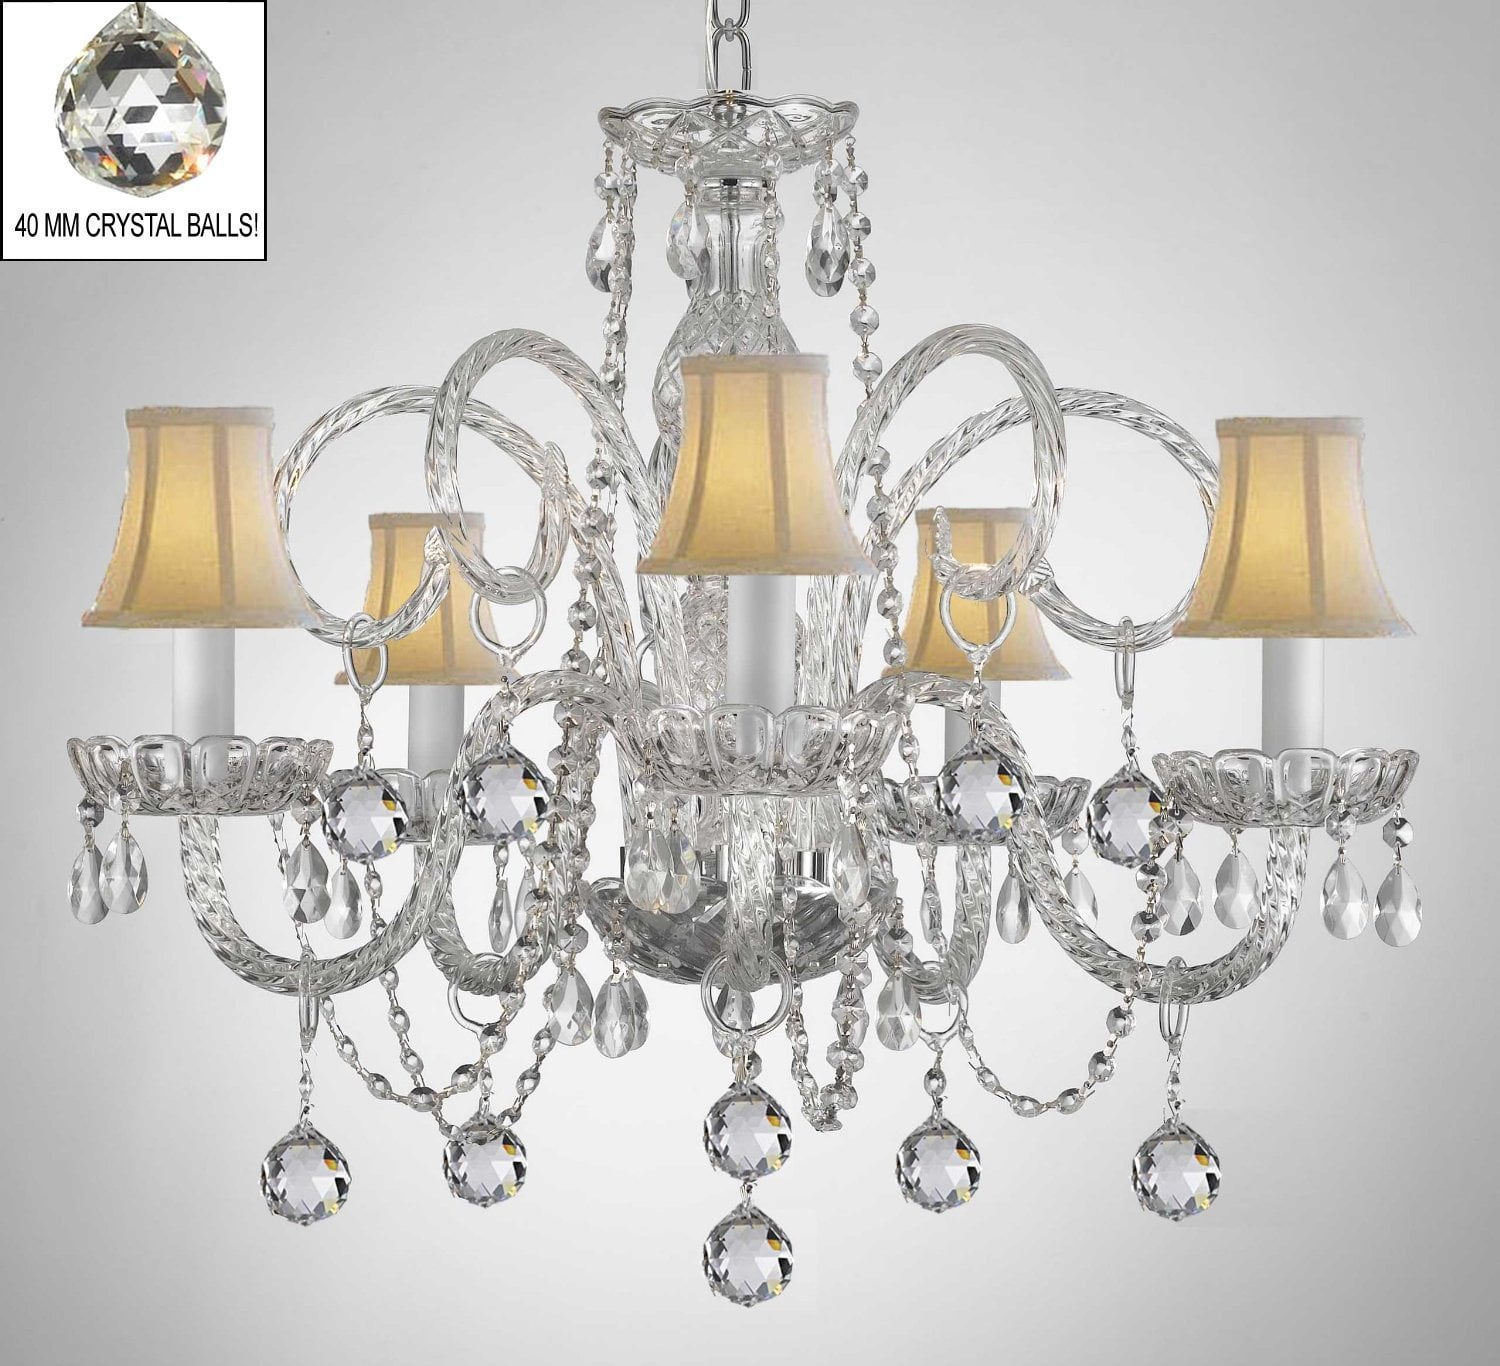 A46-B6/WHITESHADES/385/5 SW / LED Compatible / Indoor / 5 Lights Chandeliers 0